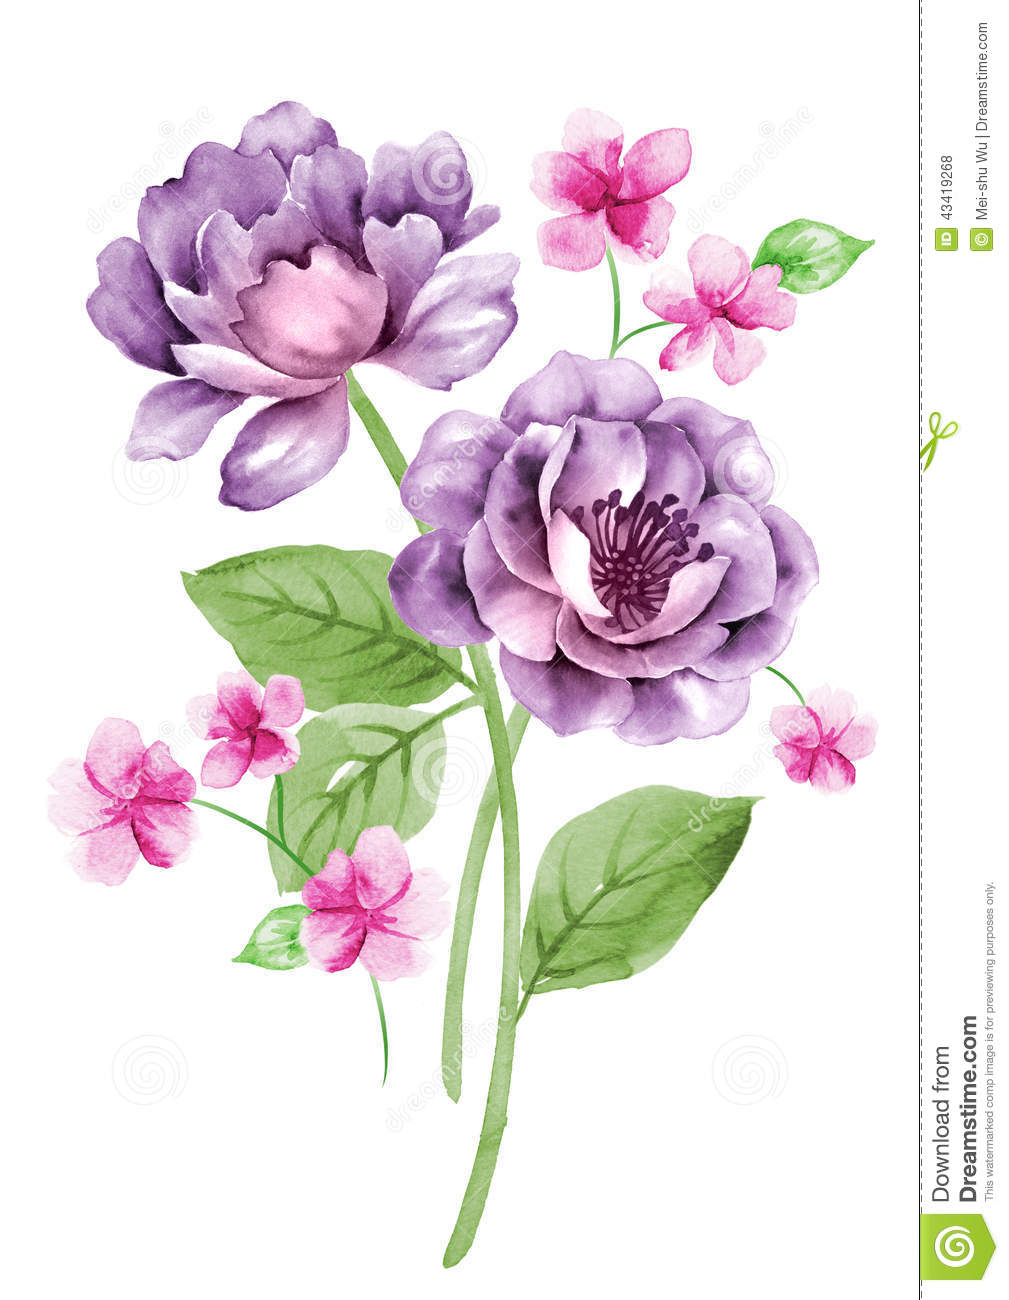 Watercolor Illustration Flower In Simple Background Stock ...